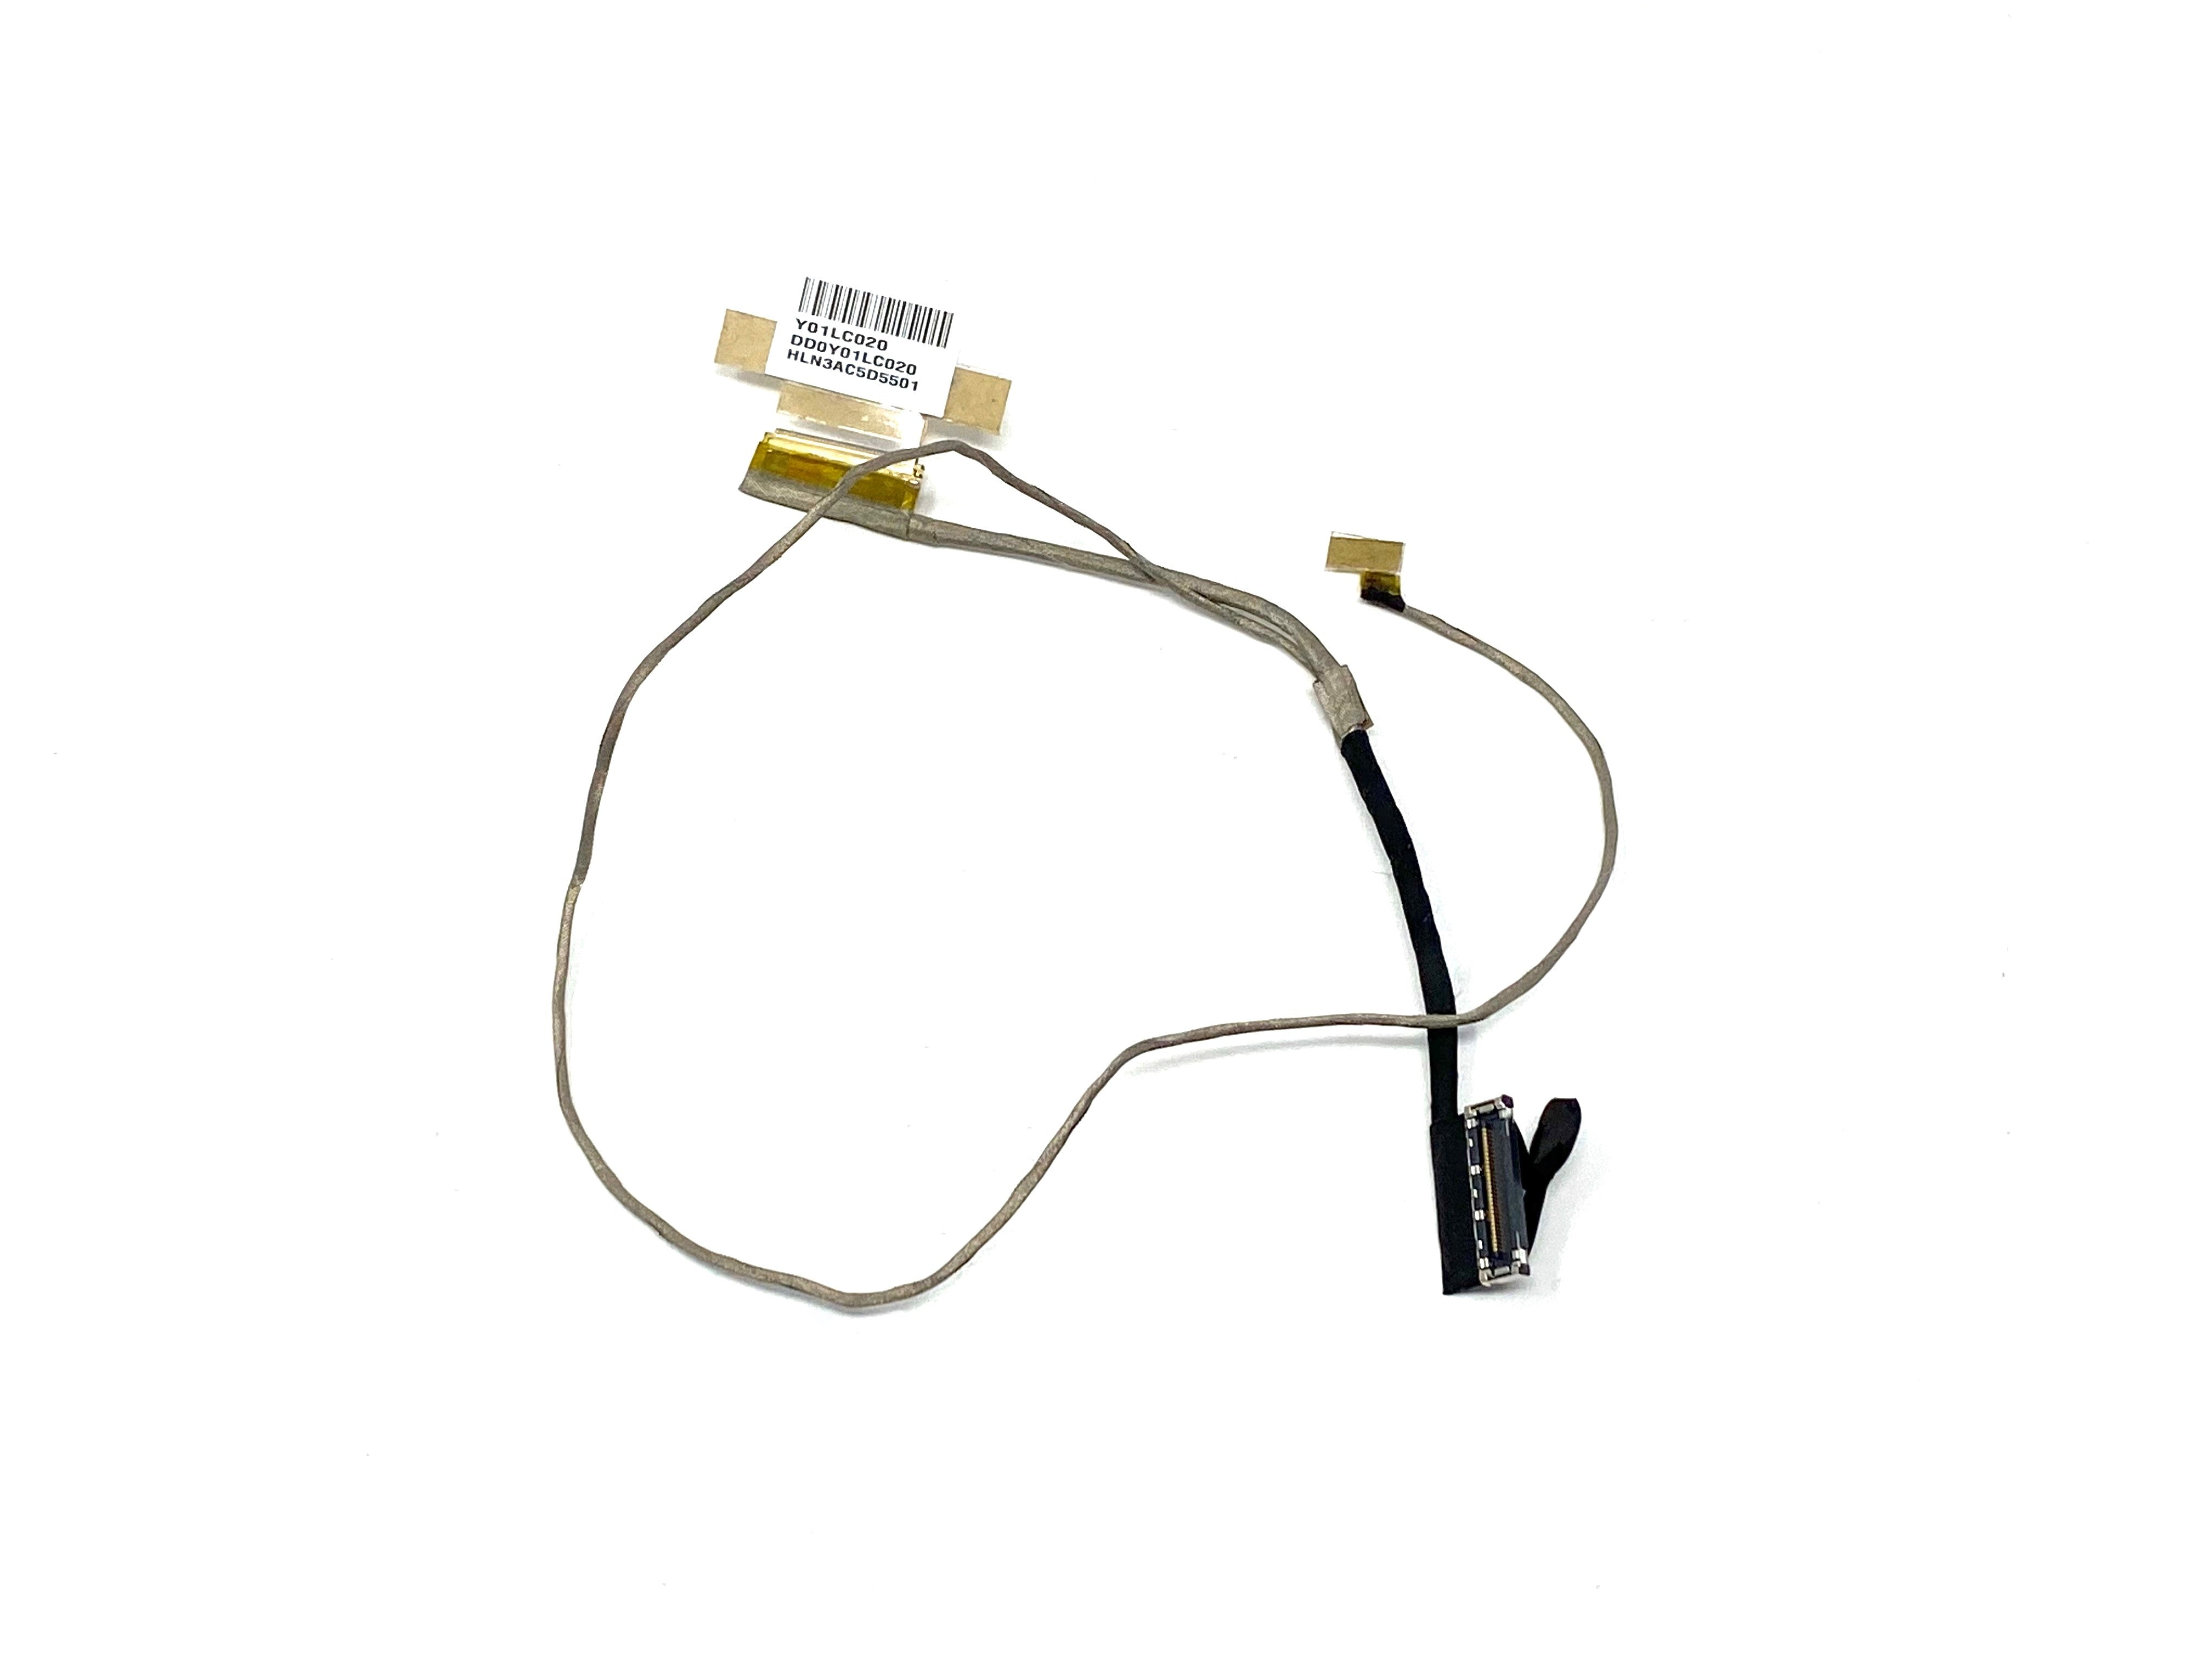 HP Chromebook 14 SMB / 14 Q-Series LCD Cable - 740145-001 / DD0Y01LC020